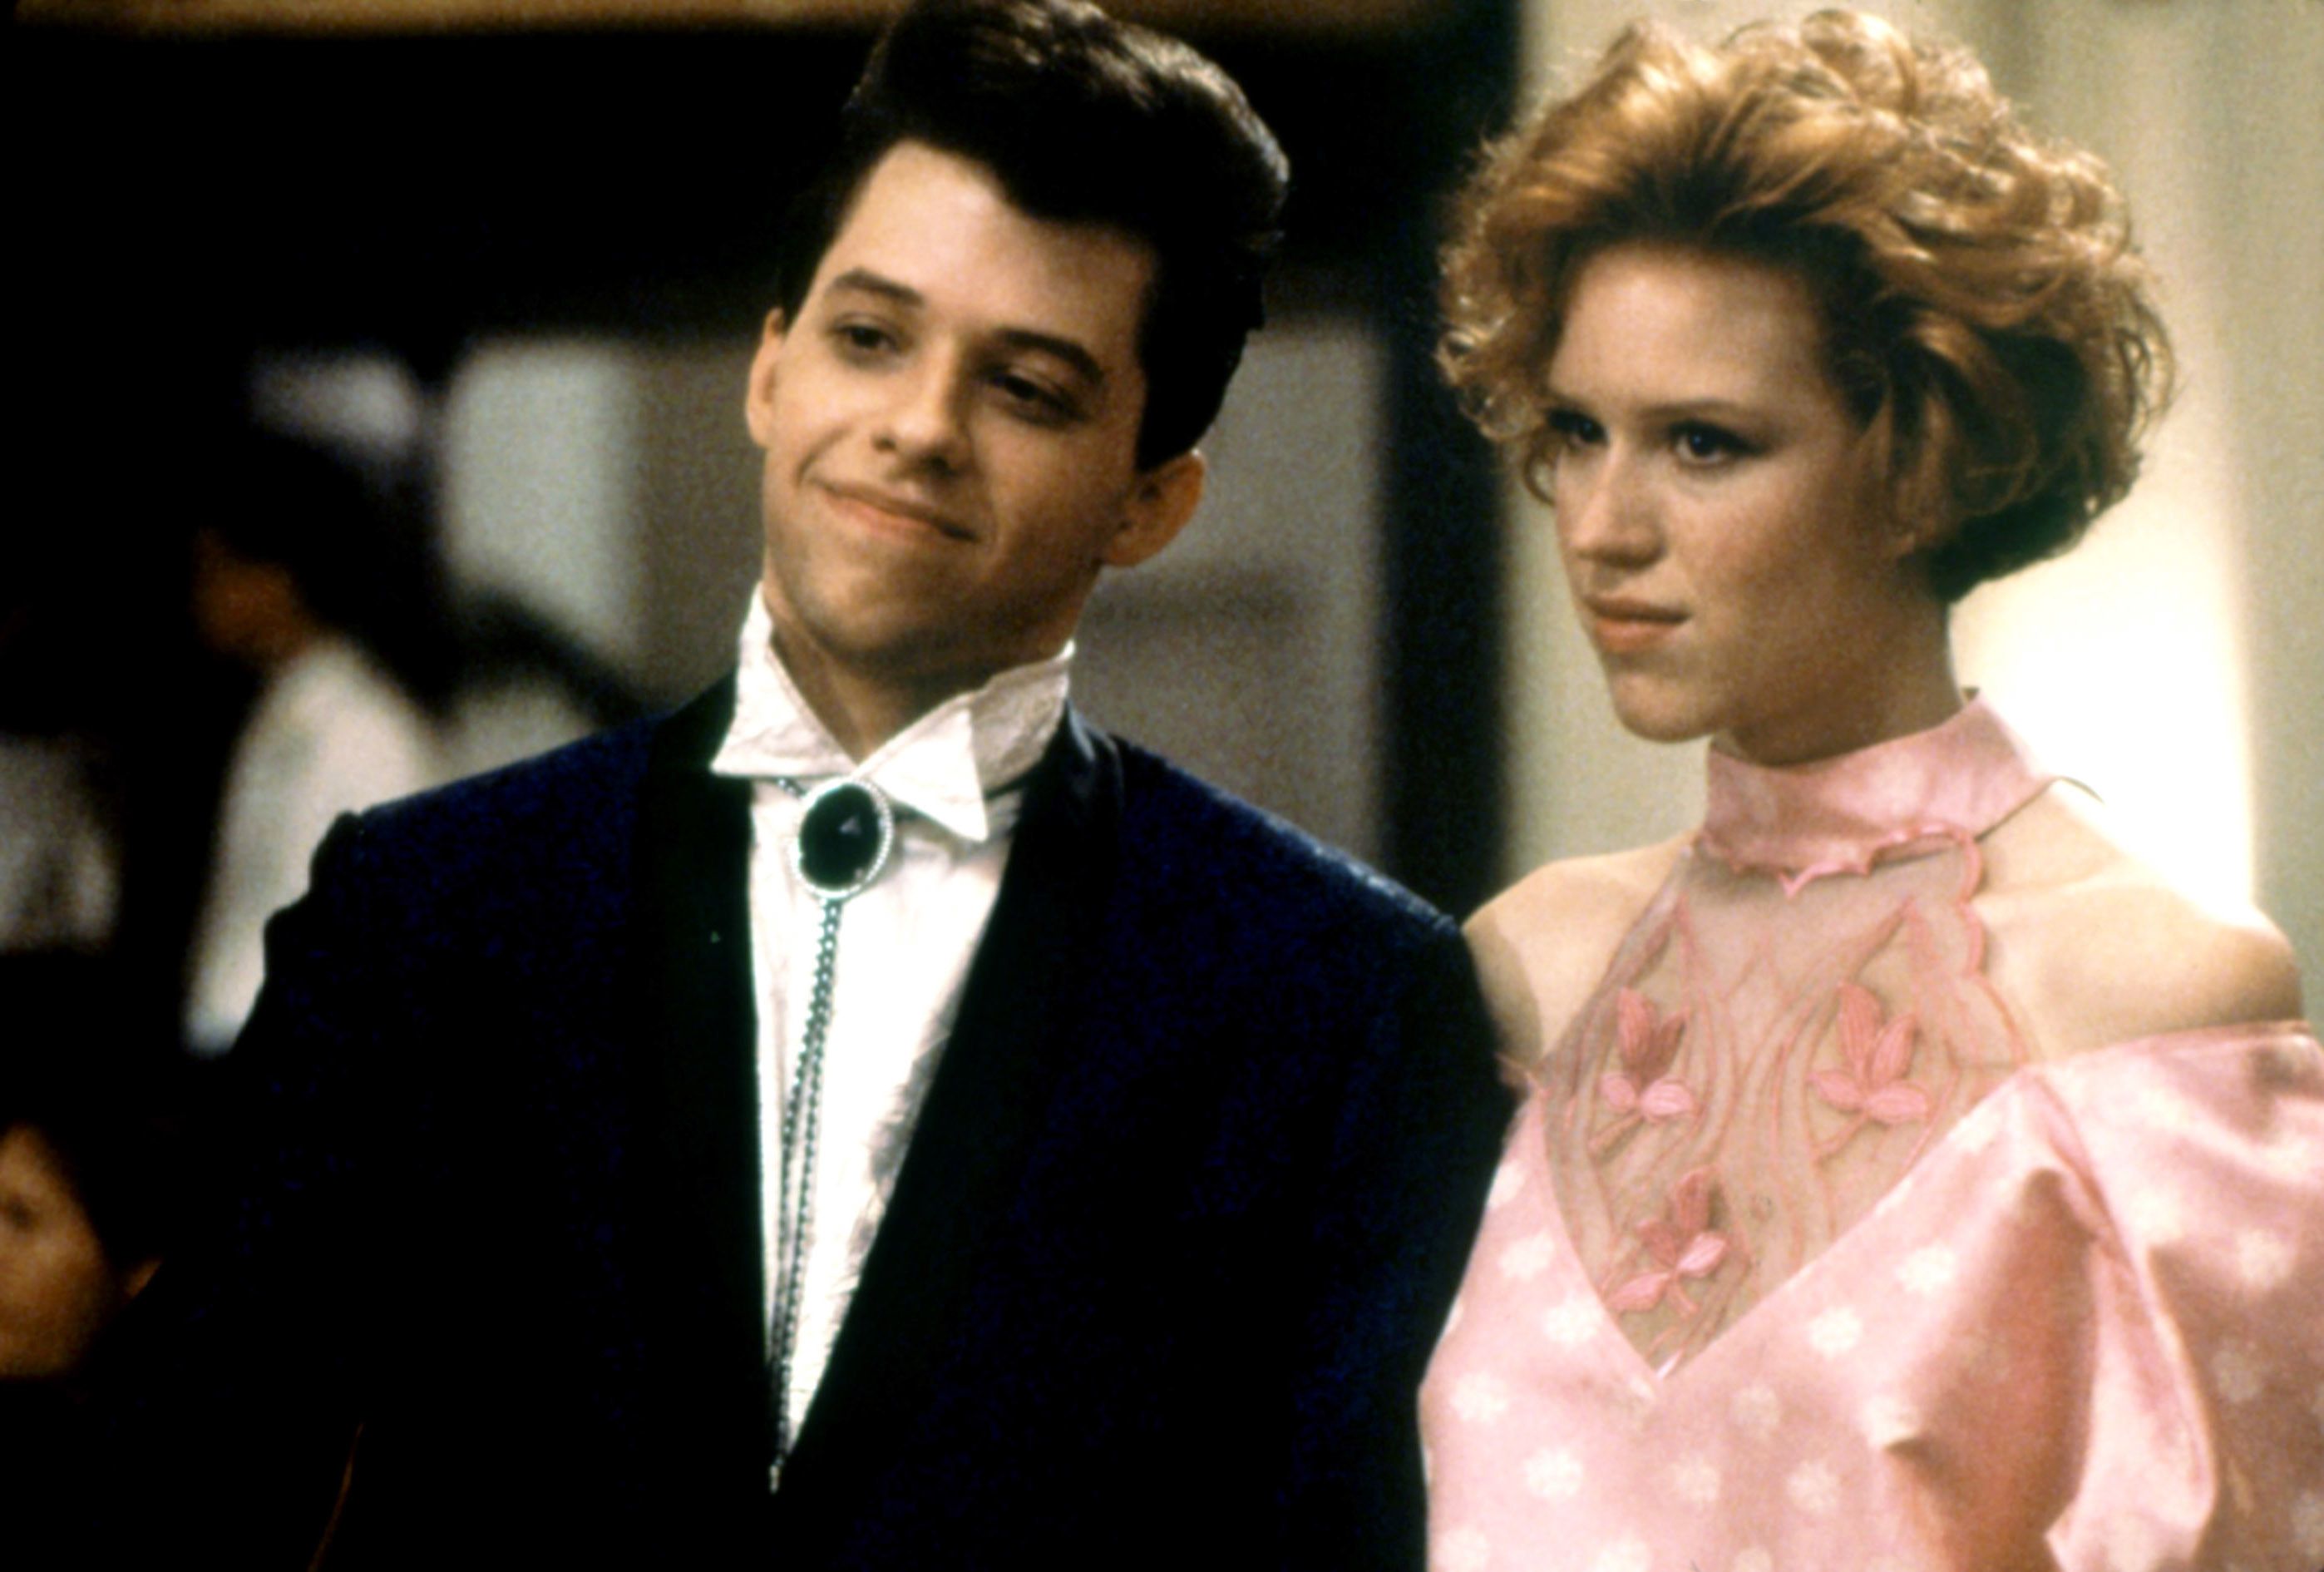 Andie and Duckie standing together at the prom